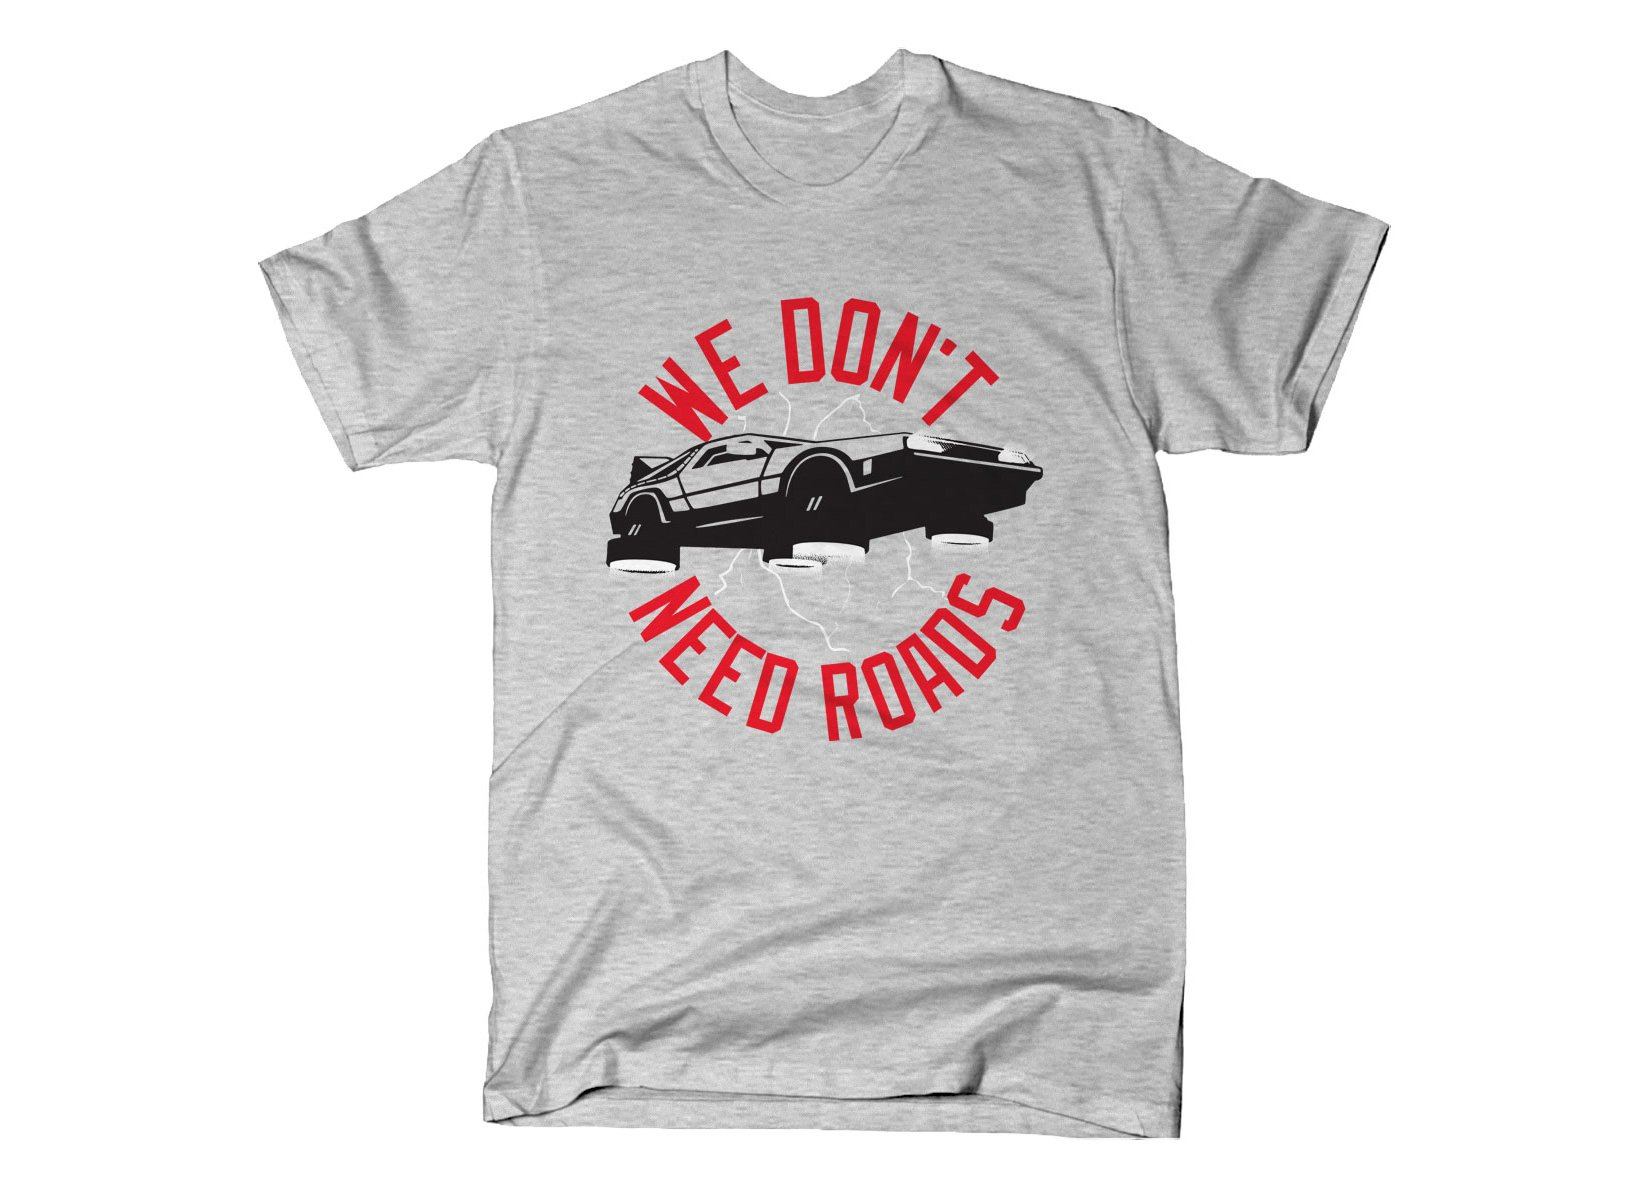 We Don't Need Roads on Mens T-Shirt